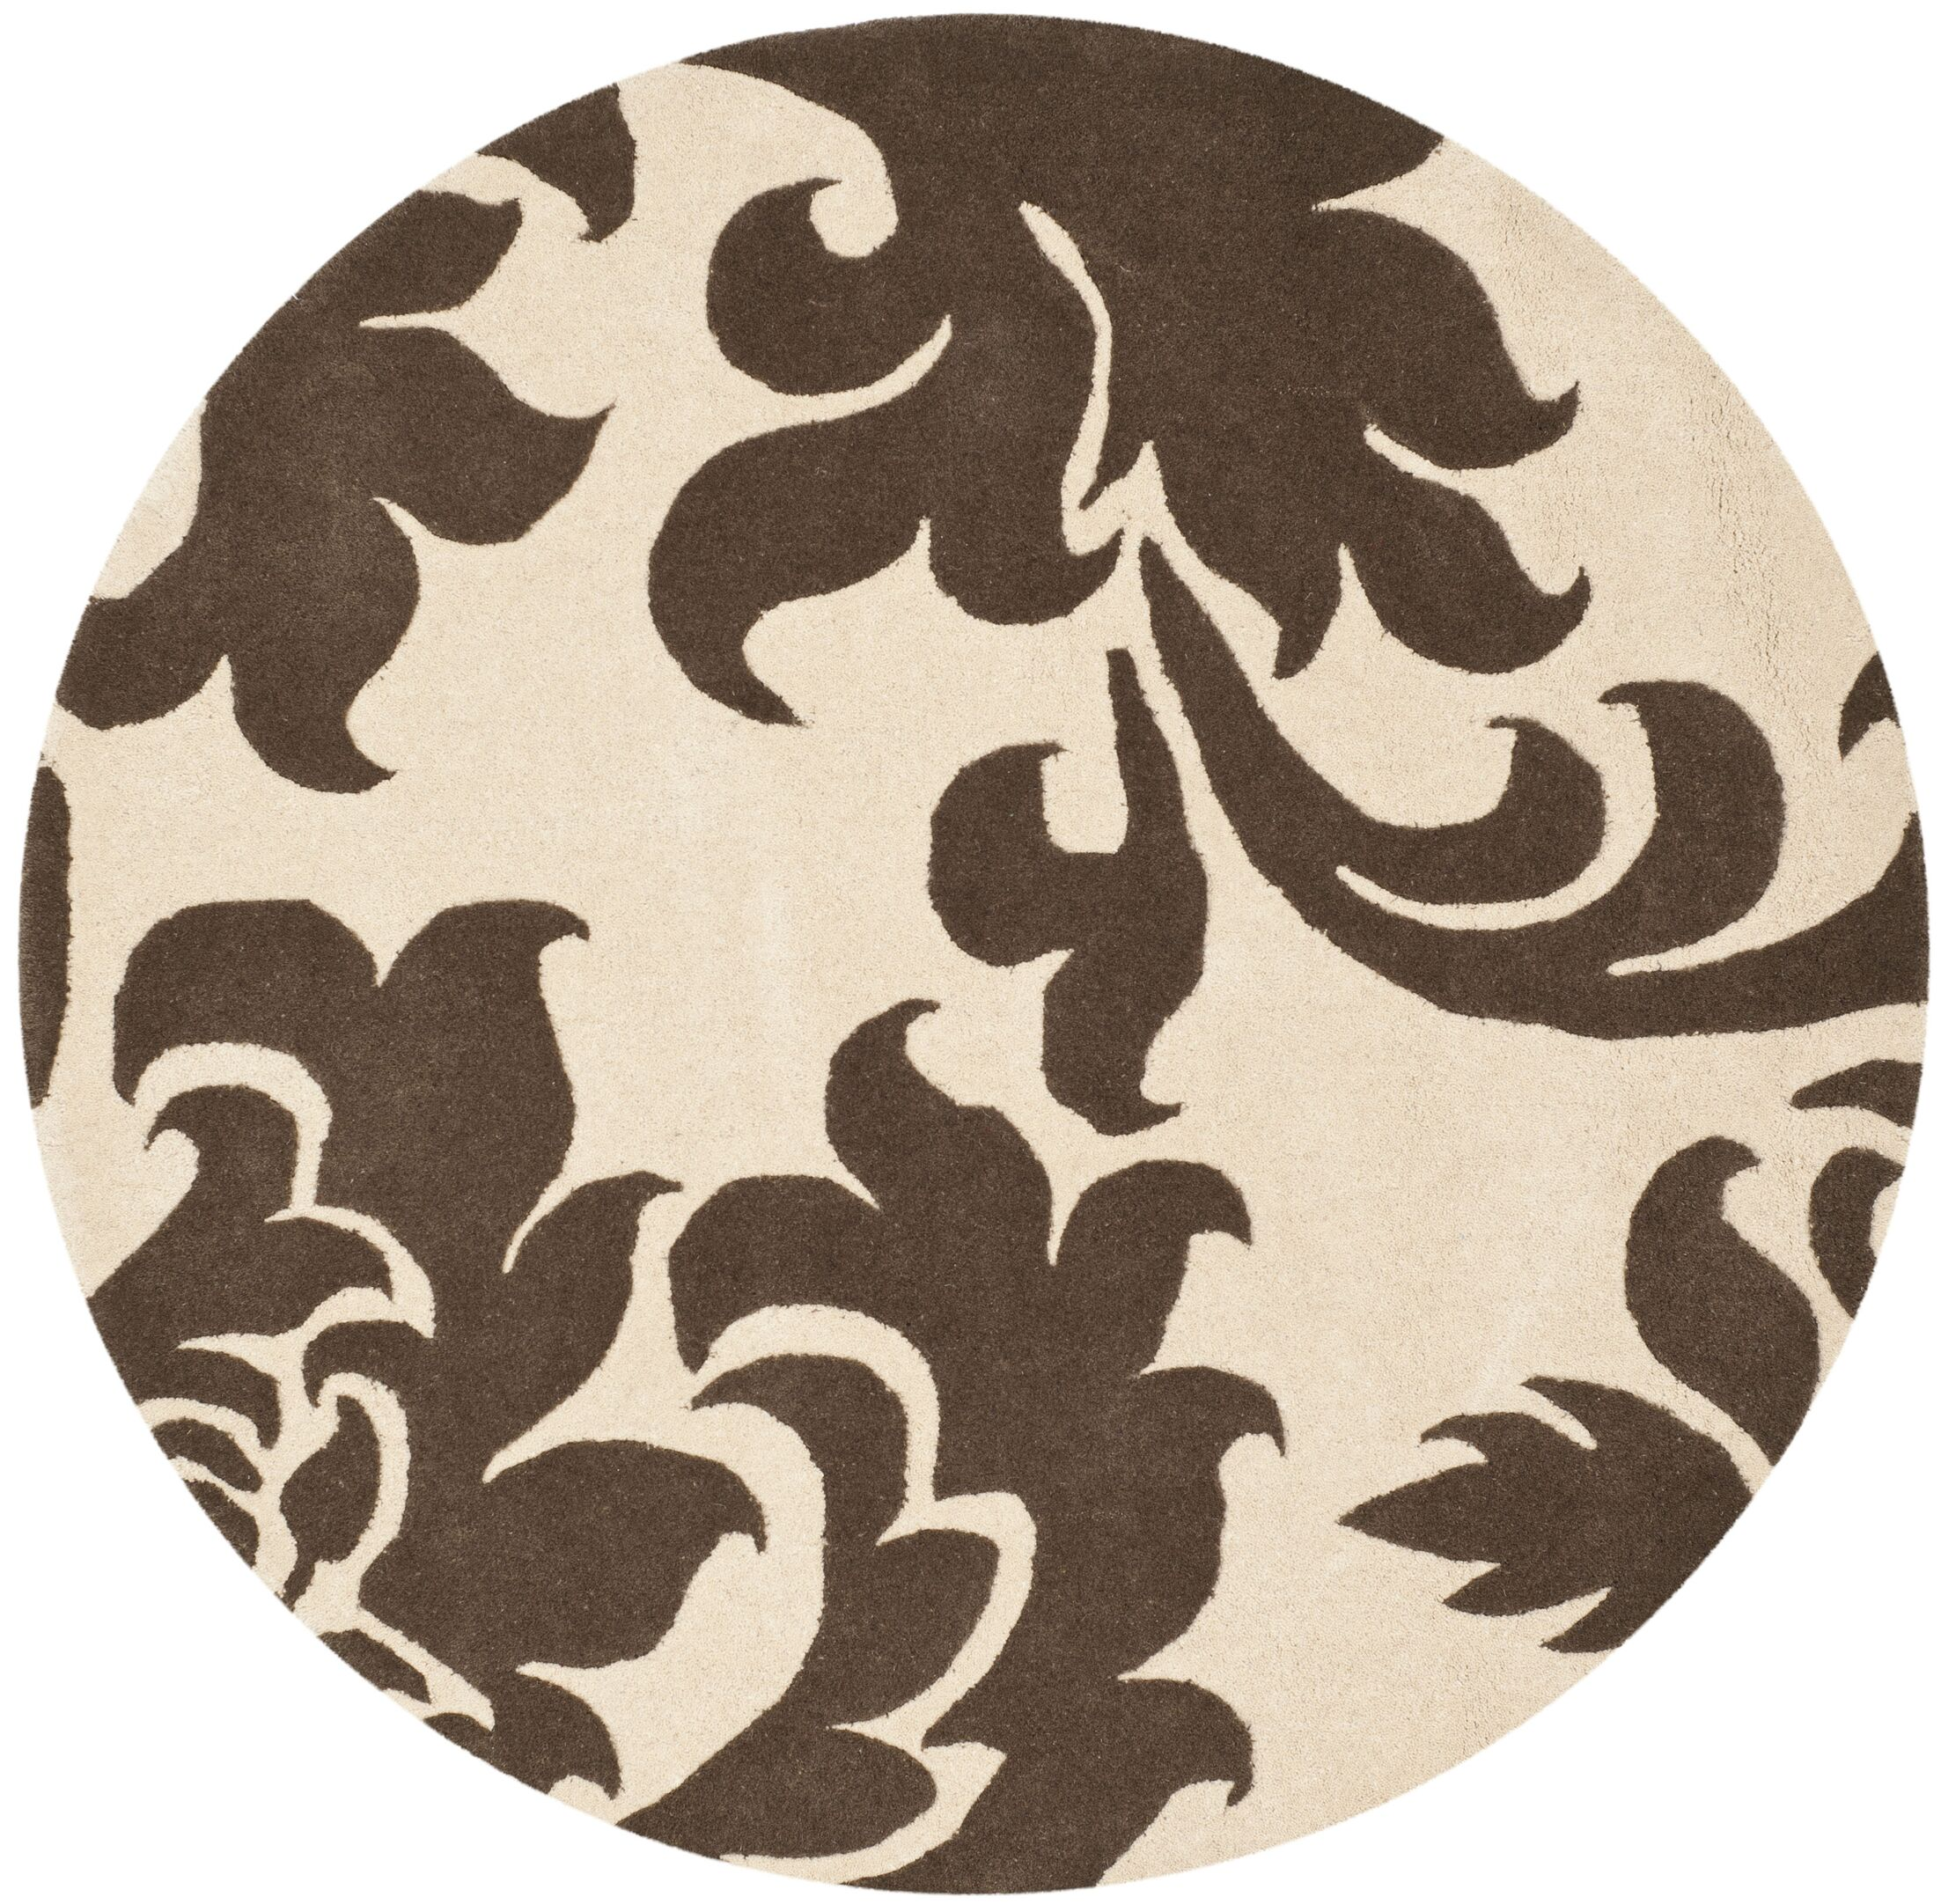 Barcelona Hand-Loomed Brown/Gray Area Rug Rug Size: Round 8'